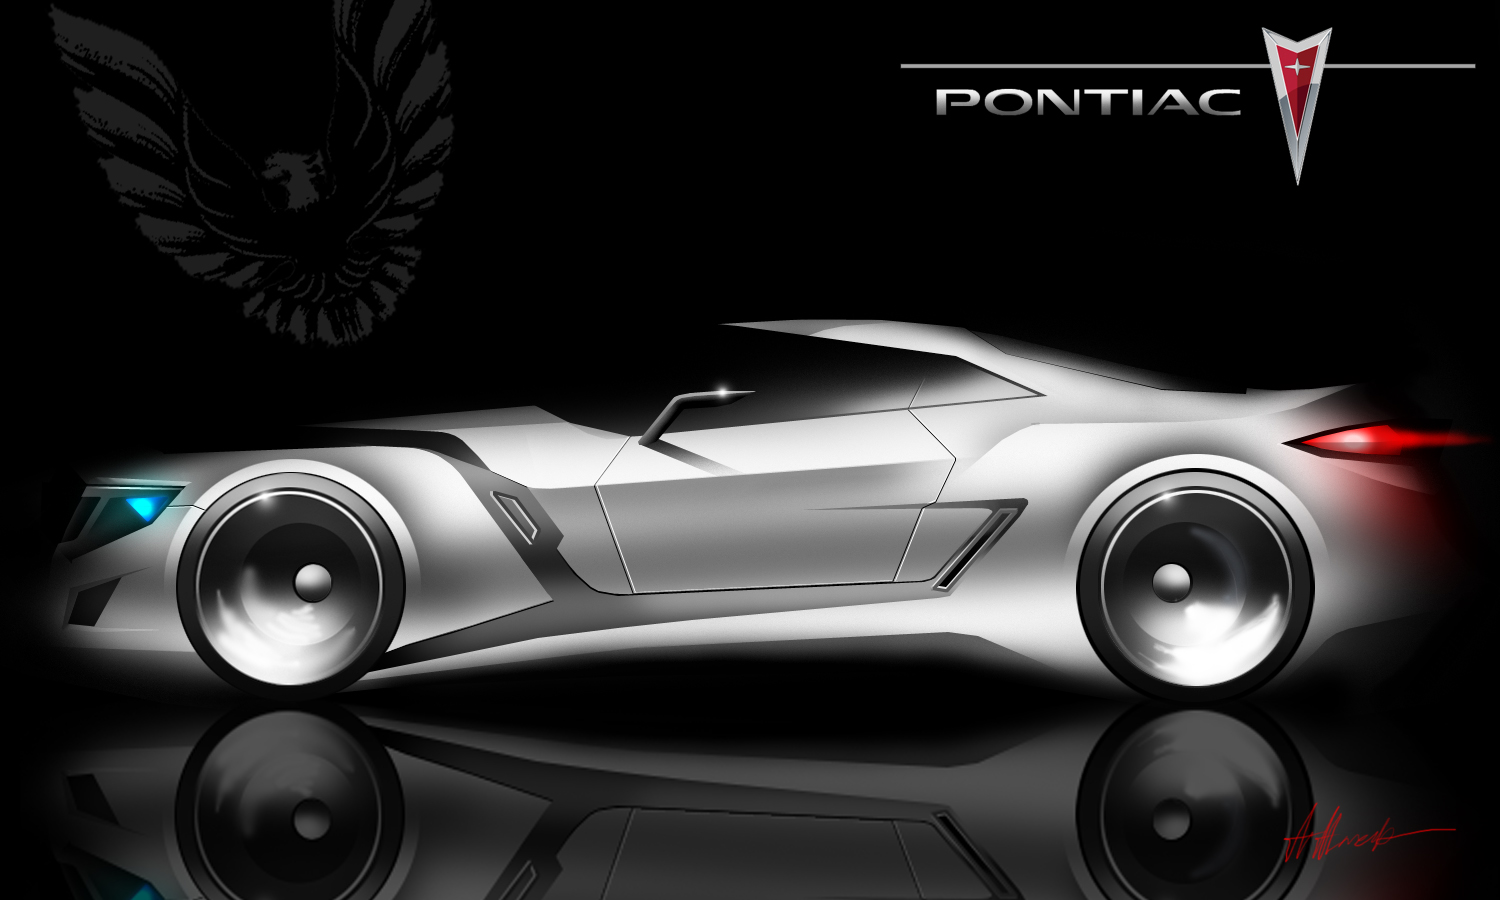 2017 Pontiac GTO Concept photo - 3